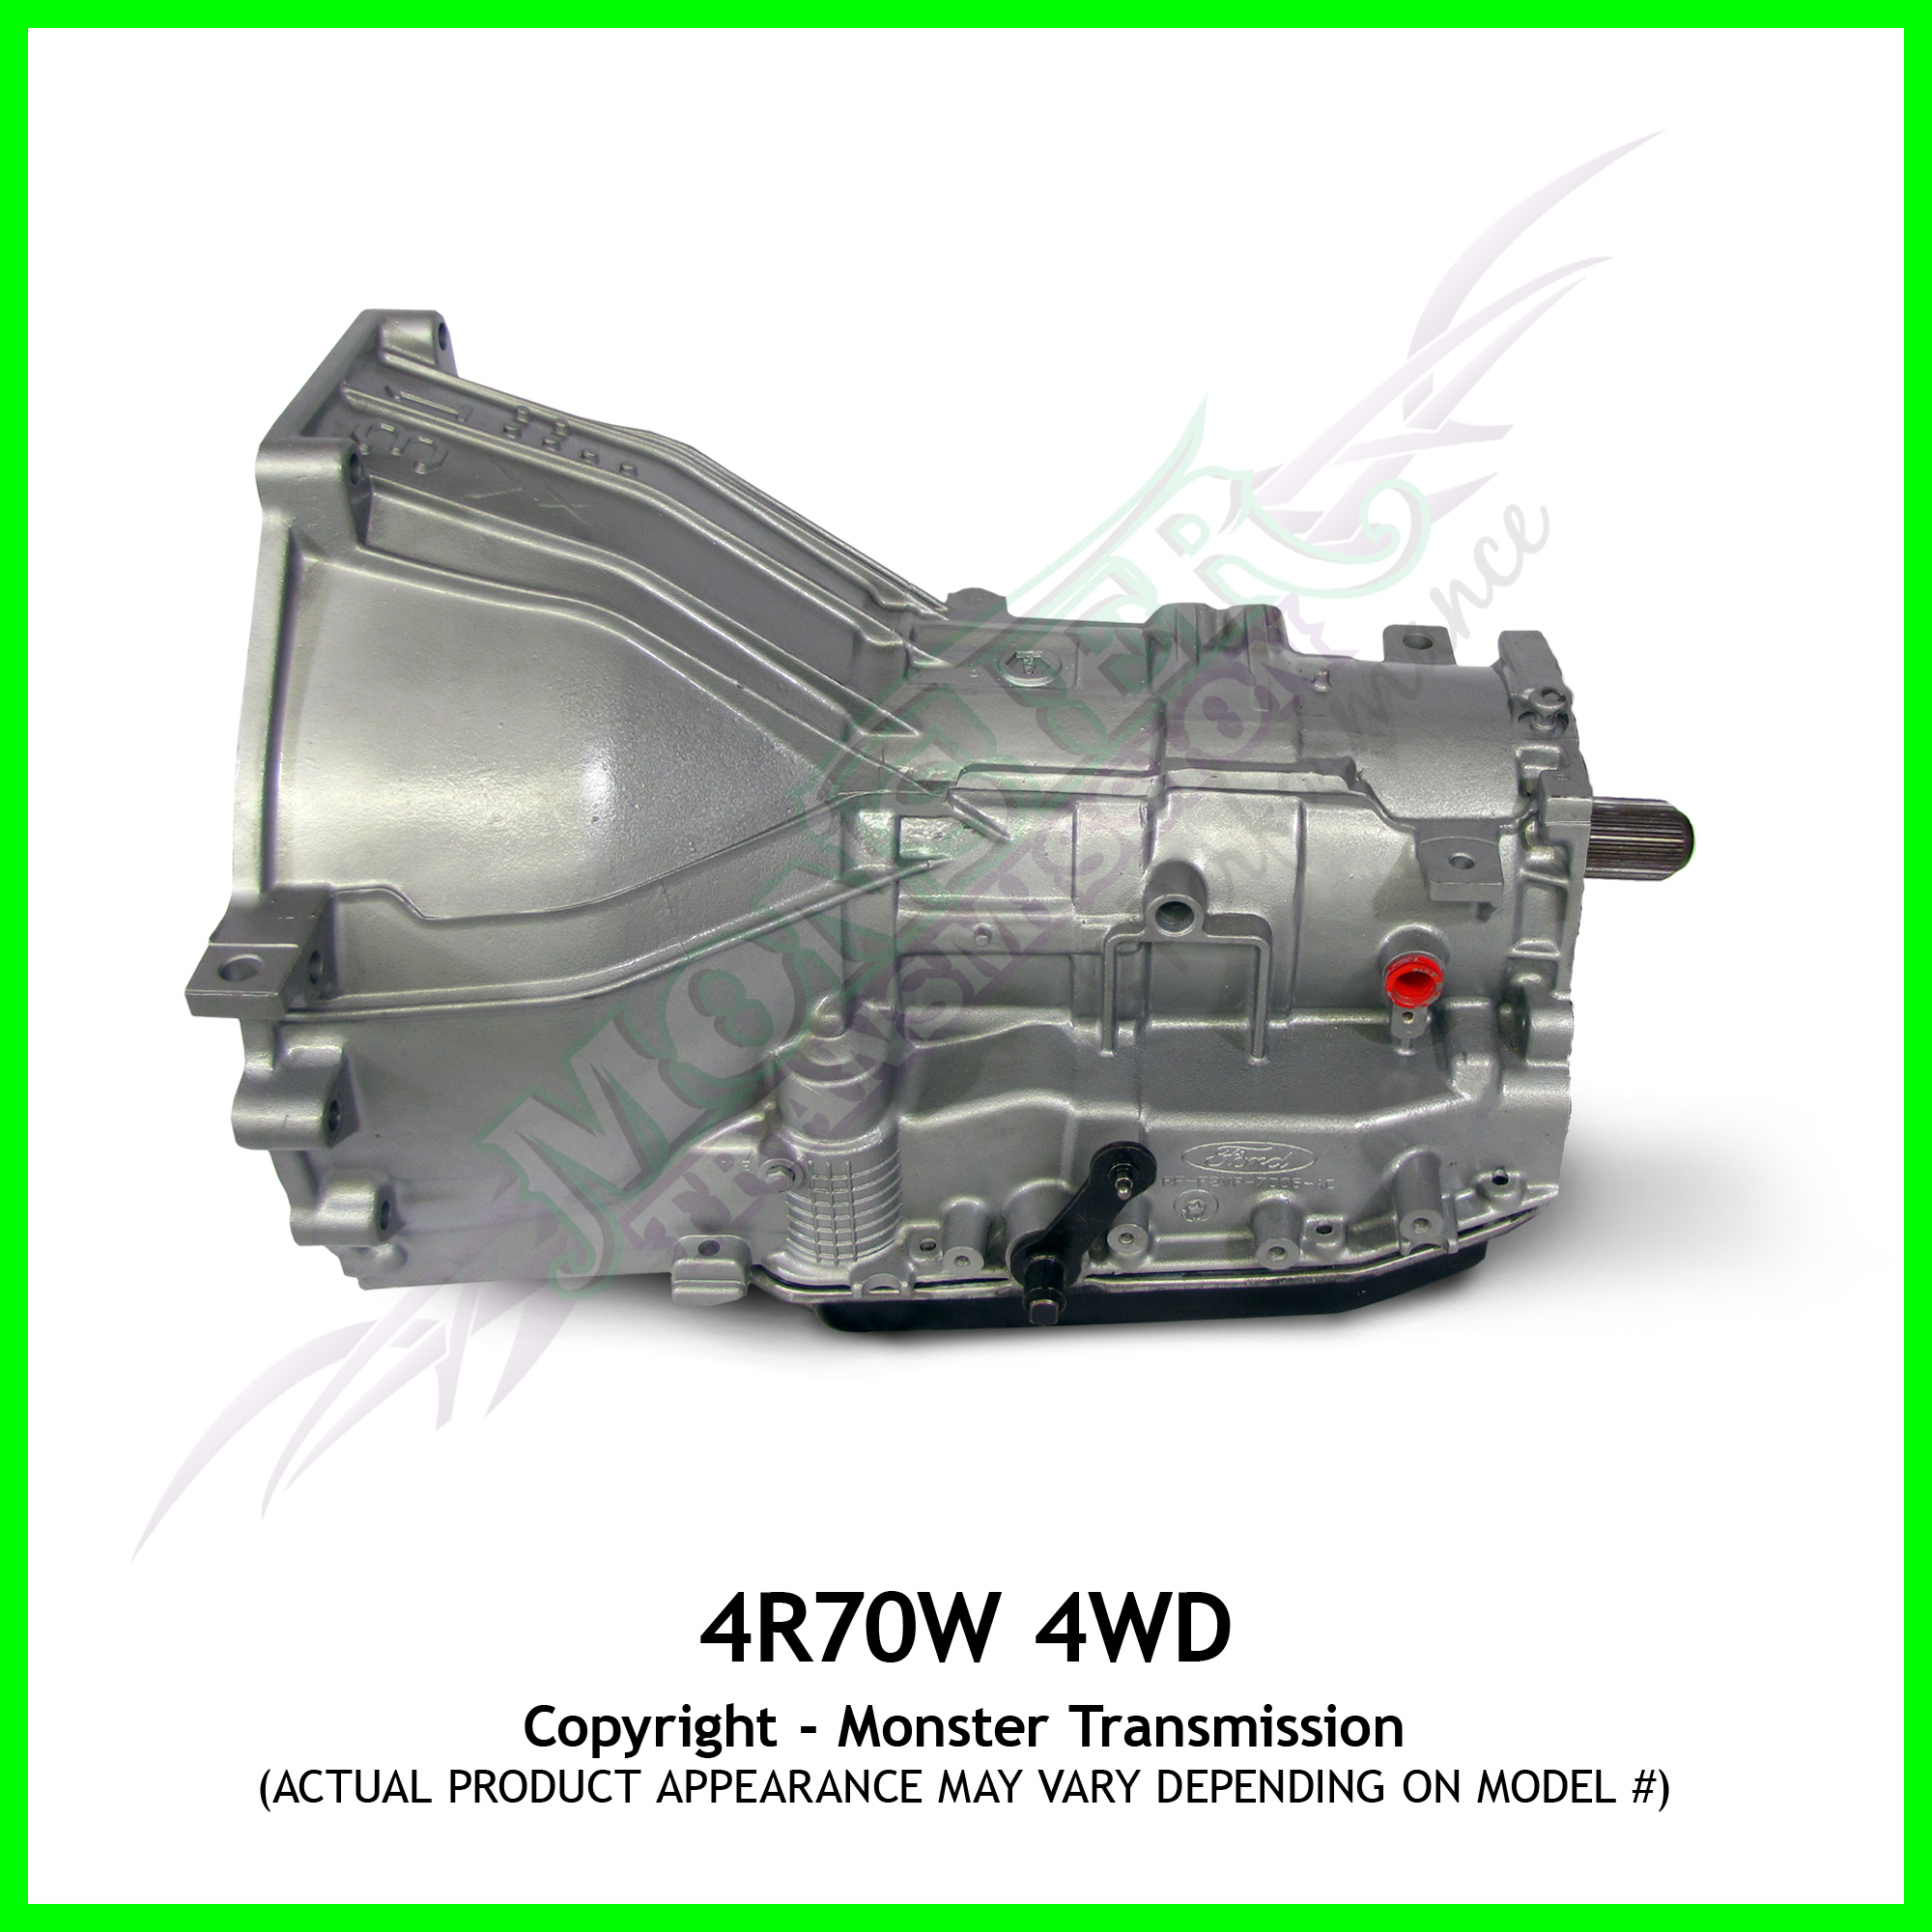 4r75e Transmission For Sale >> 4R70W Transmission Remanufactured Heavy Duty Performance Transmission 4x4